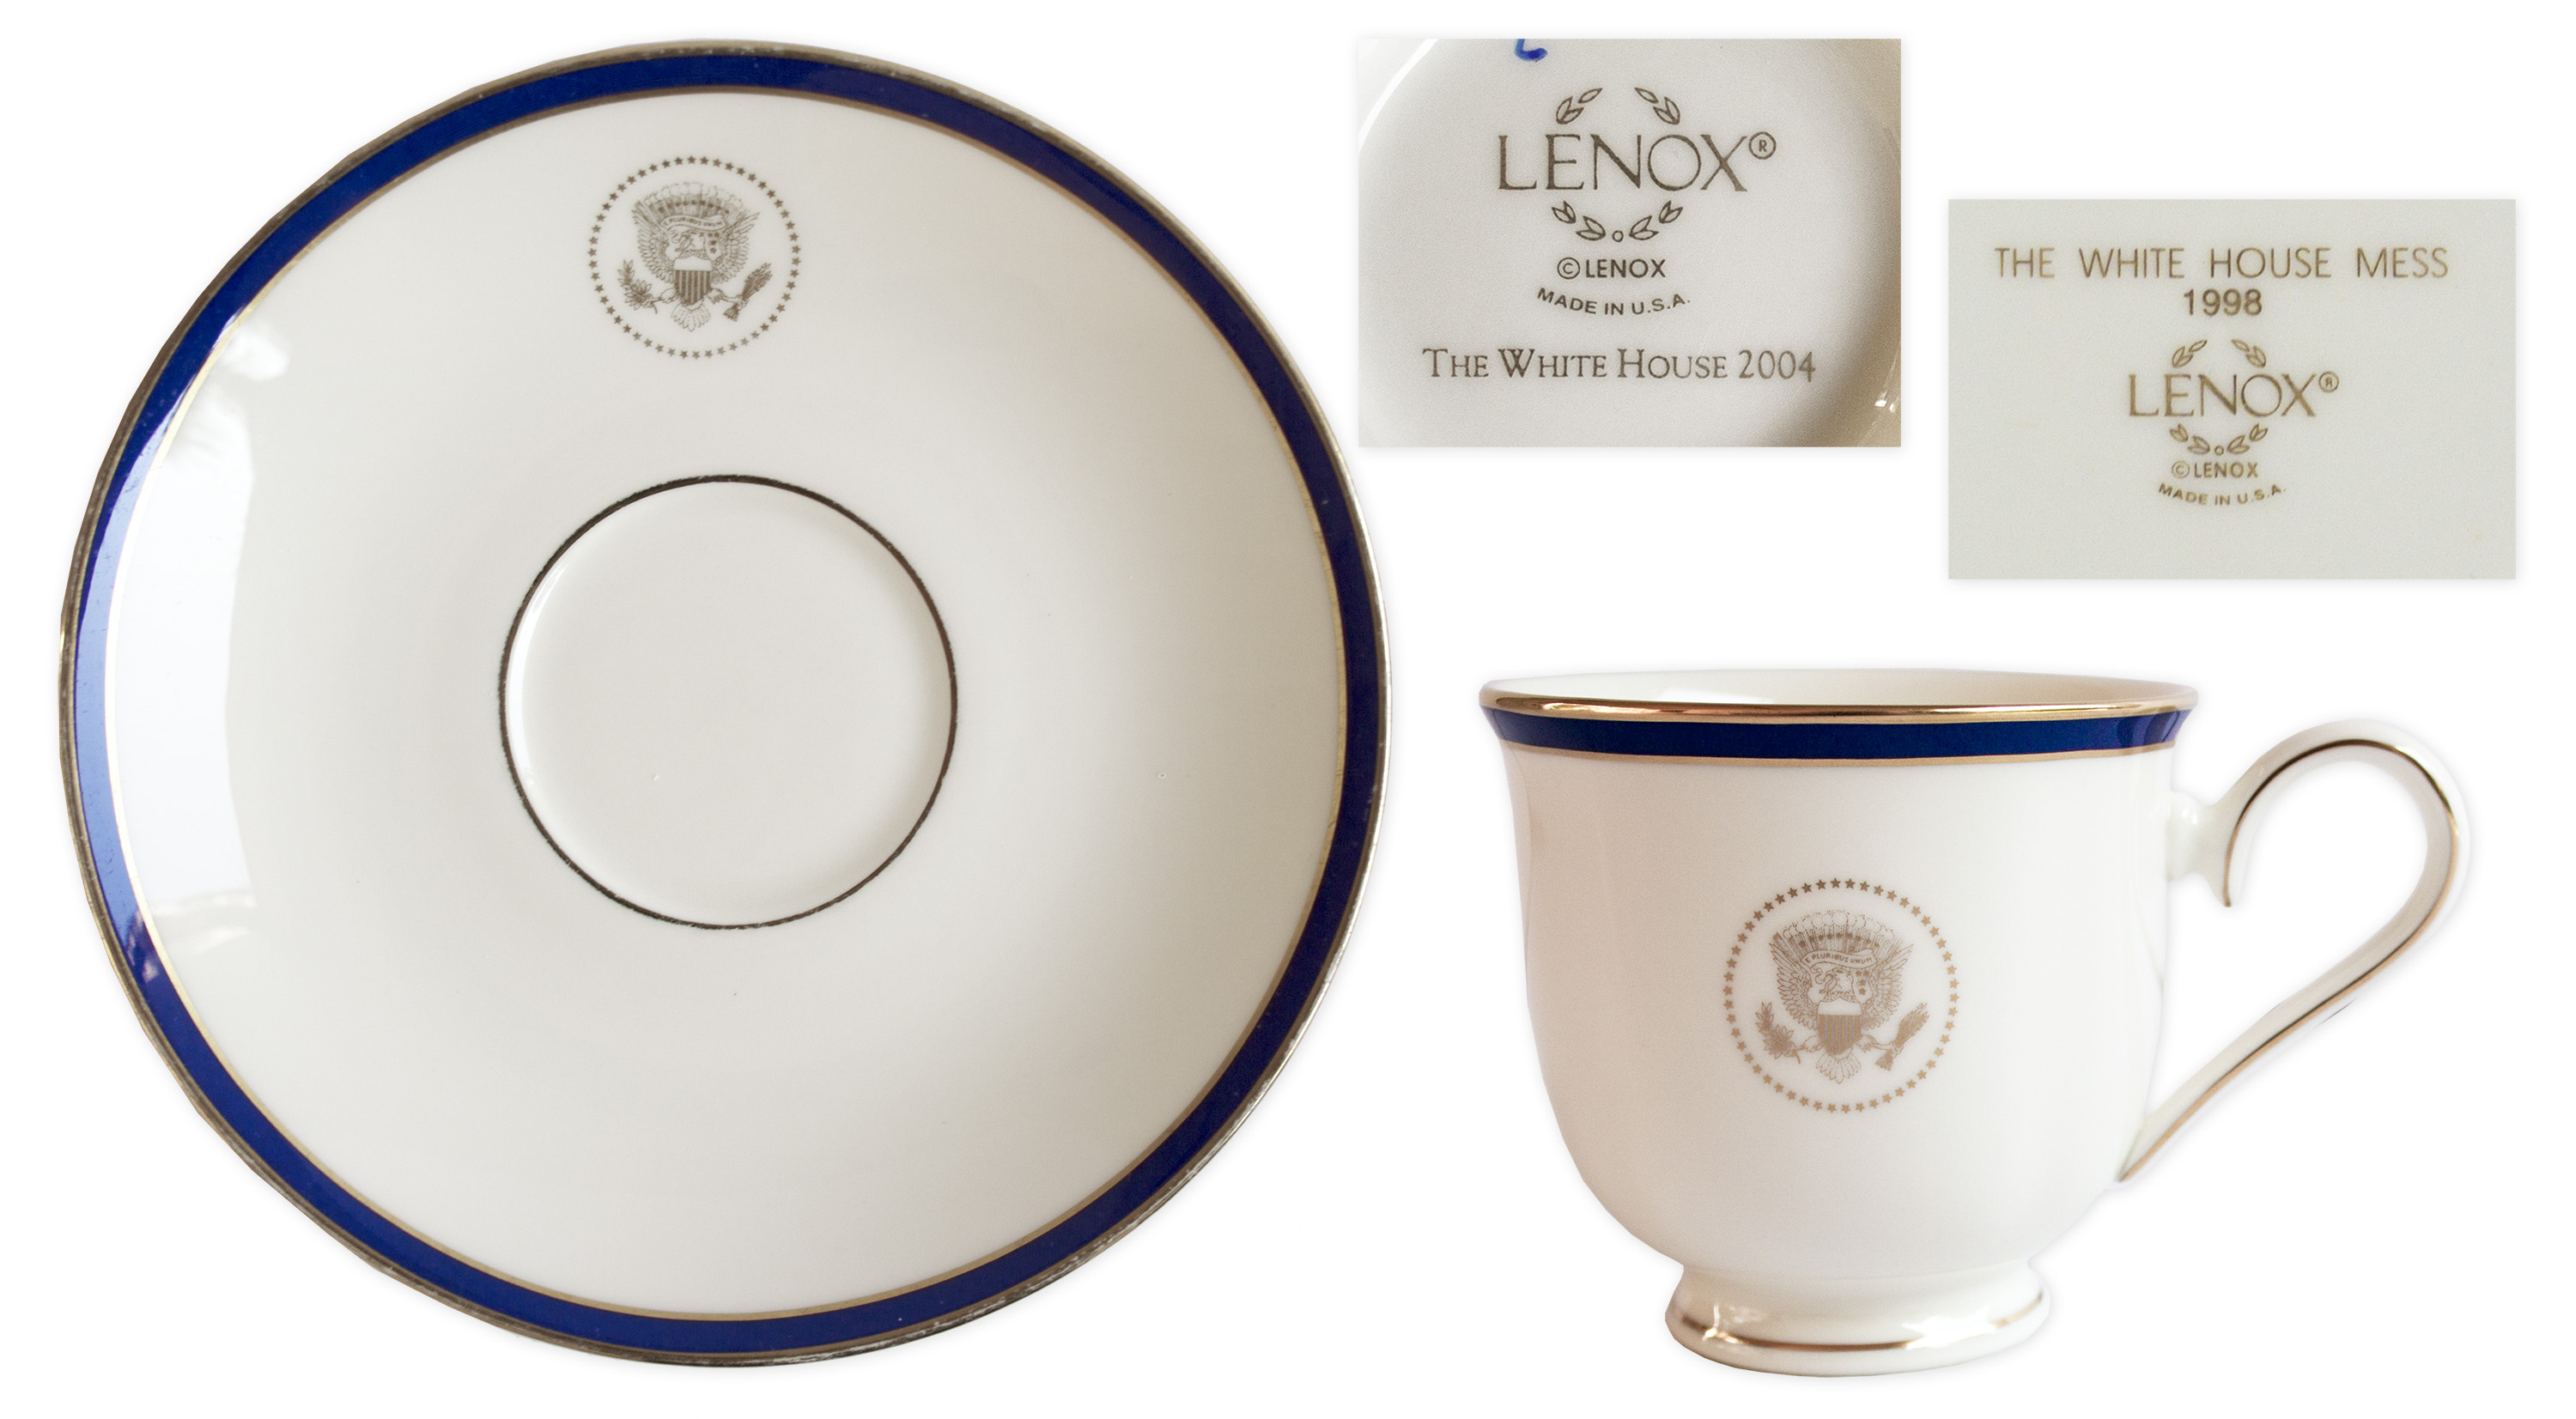 White House China From the Bill Clinton u0026 George W. Bush Administrations -- For ...  sc 1 st  Nate D Sanders & Lot Detail - White House China From the Bill Clinton u0026 George W ...